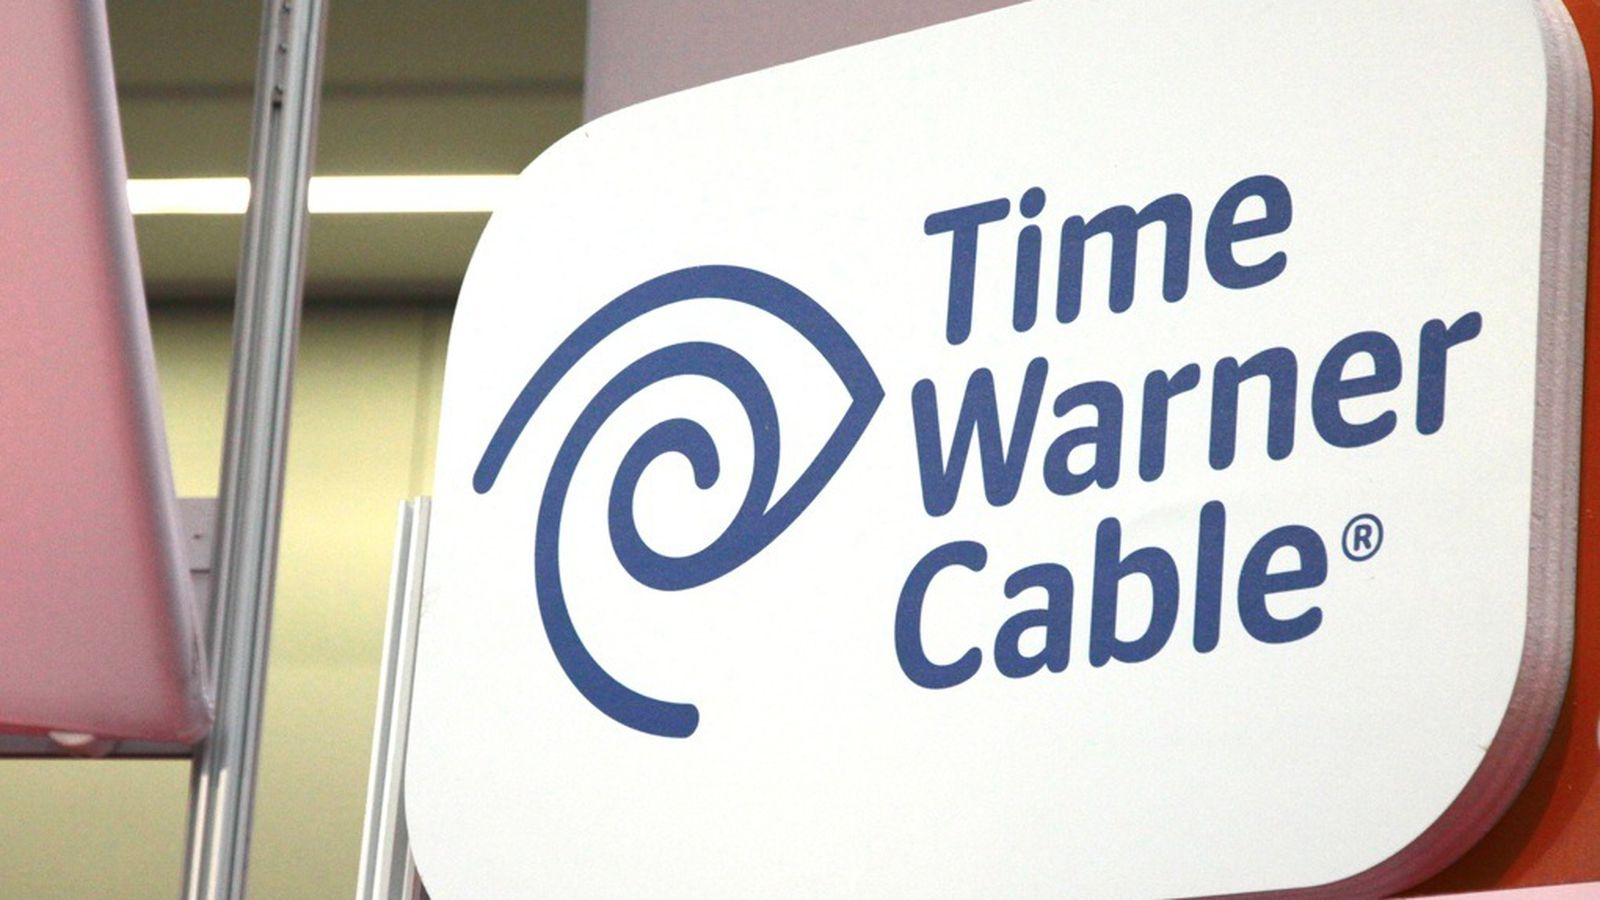 Whichever way AT&T-Time Warner shakes out, boardroom machinations are already well under way among traditional players to better battle in an internet-connected world.. CBS and Viacom are engaged.